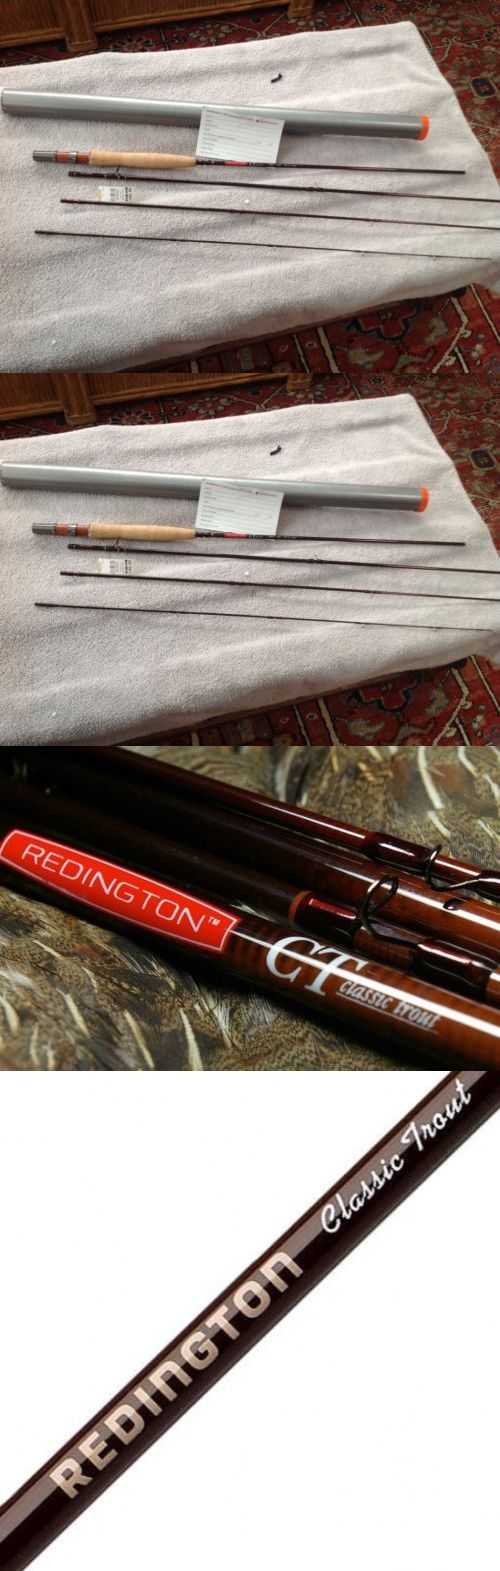 Fly Fishing Rods 23819: New Beautiful Redington Classic Trout Fly Rod 9054-5 Wt.,Warranty , Last 2 -> BUY IT NOW ONLY: $99.95 on eBay!